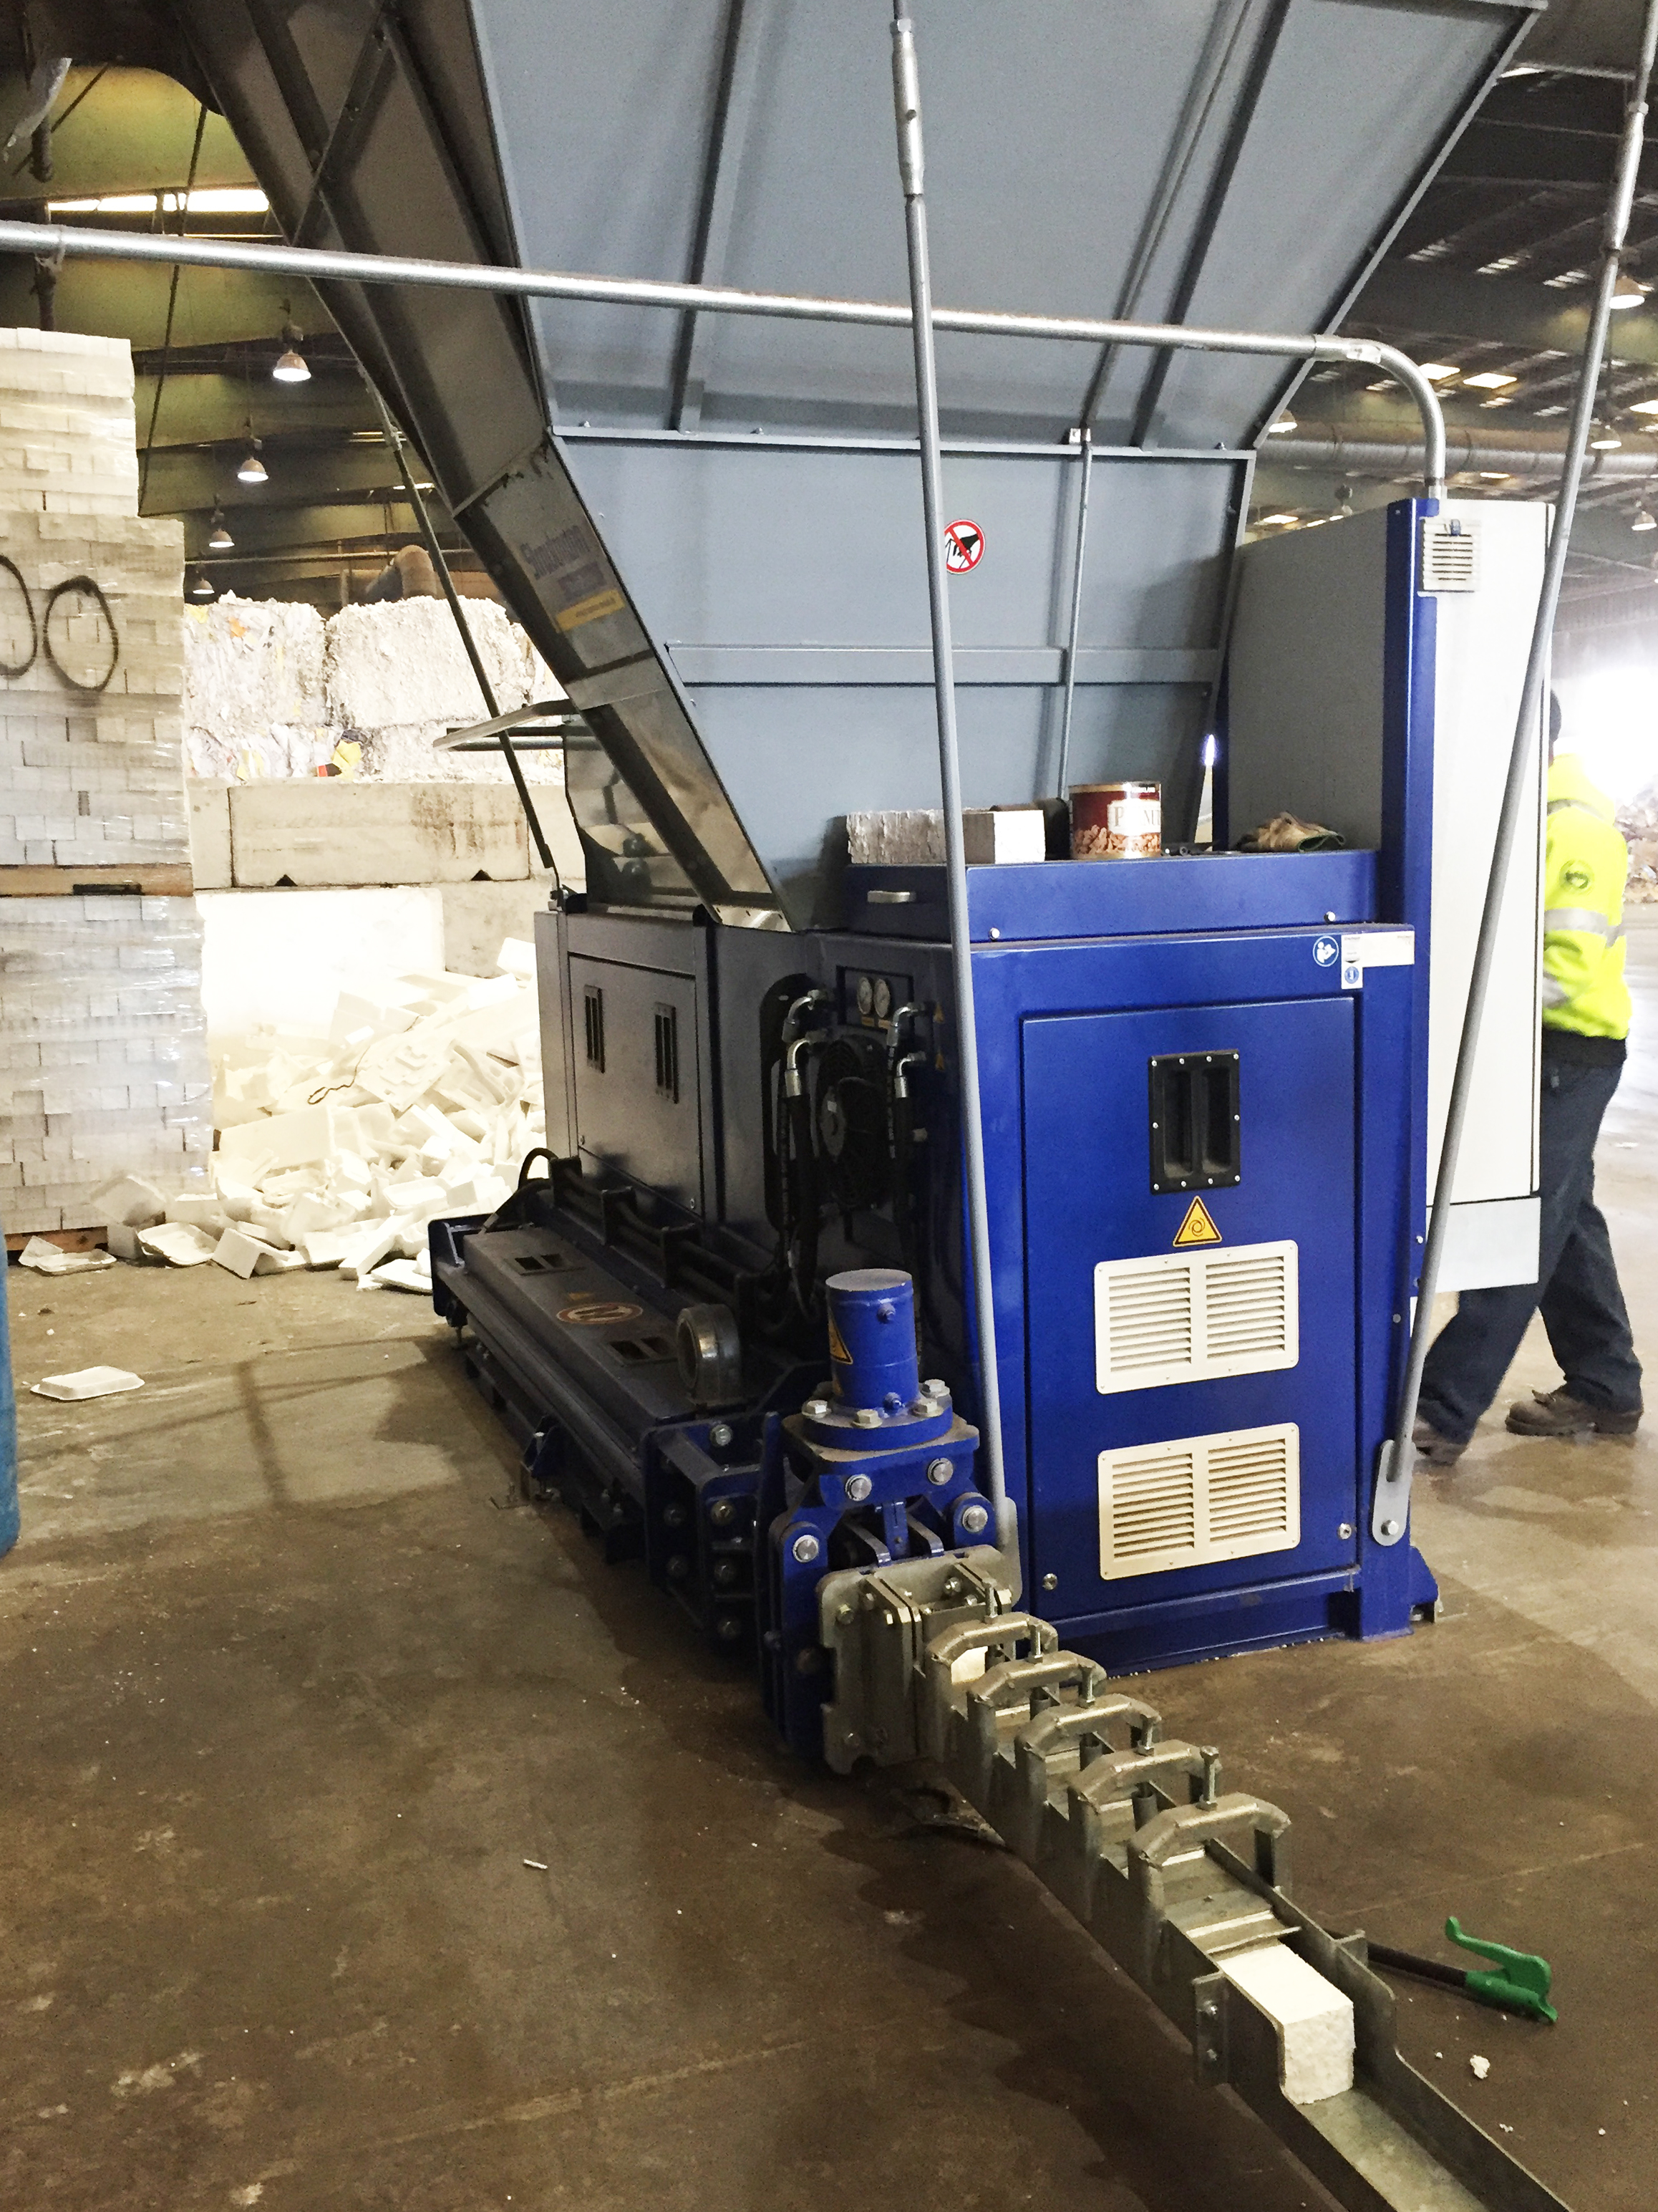 <p>Learn about foam recycling equipment</p>